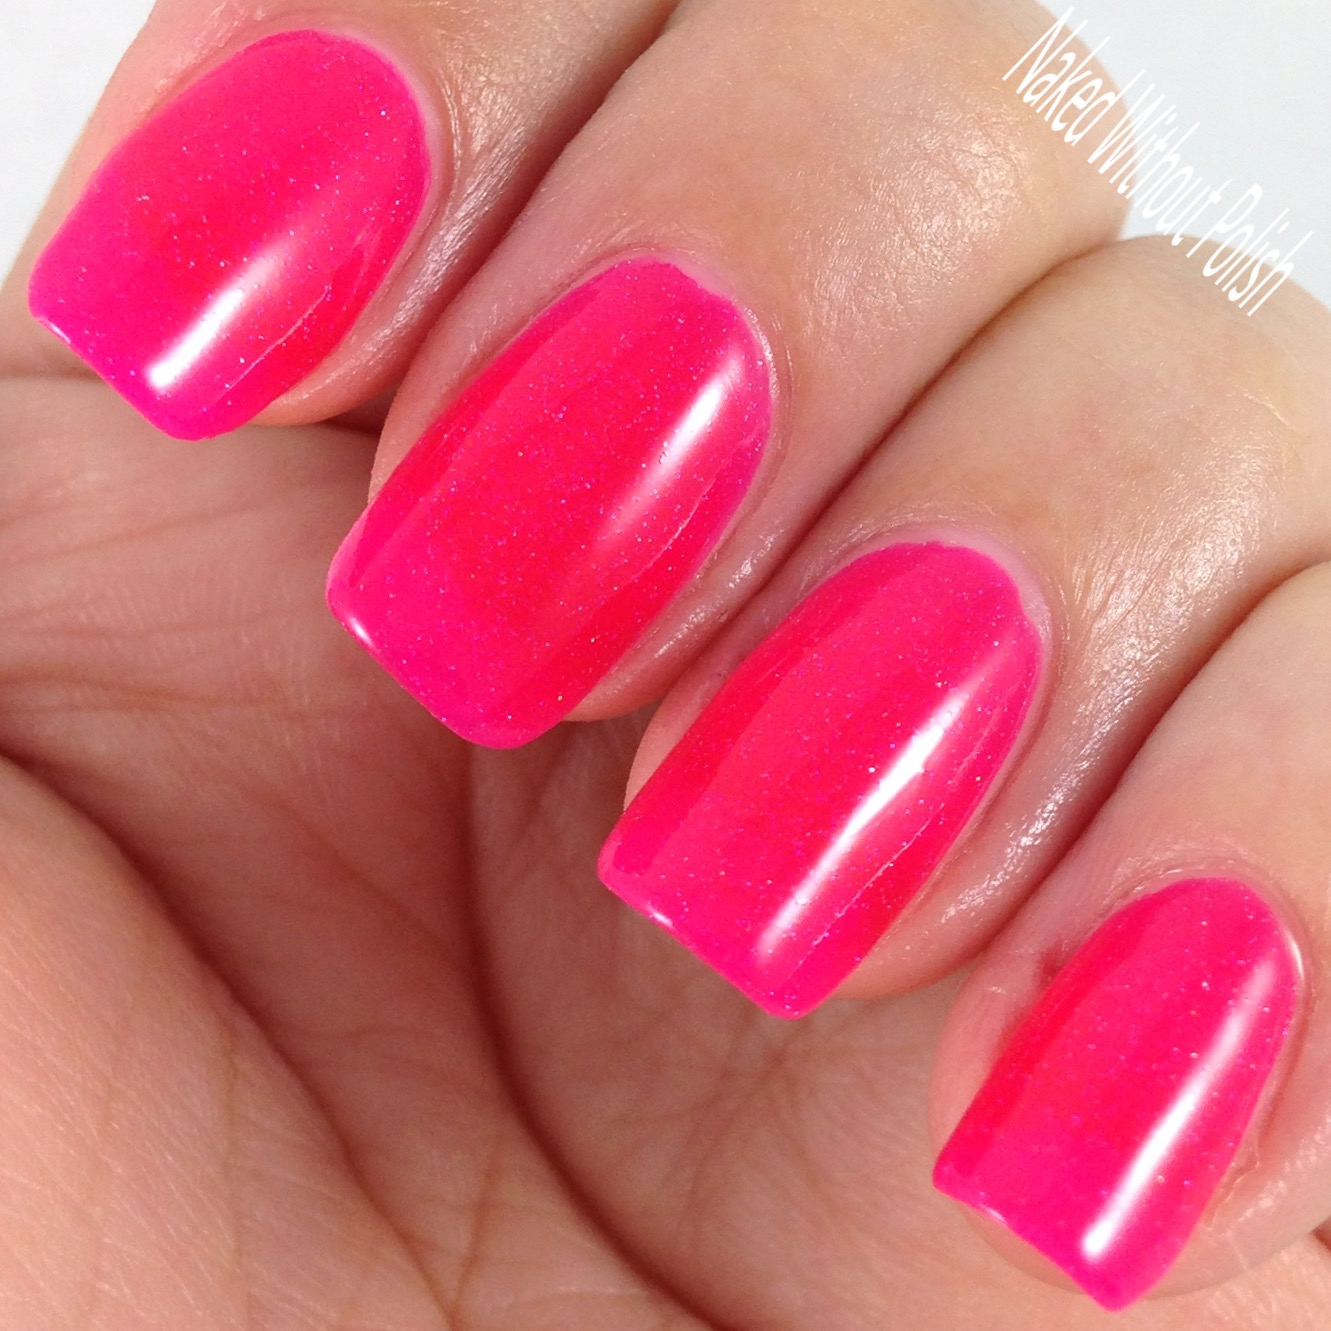 Leeshas-Lacquer-Tongue-Pop-8